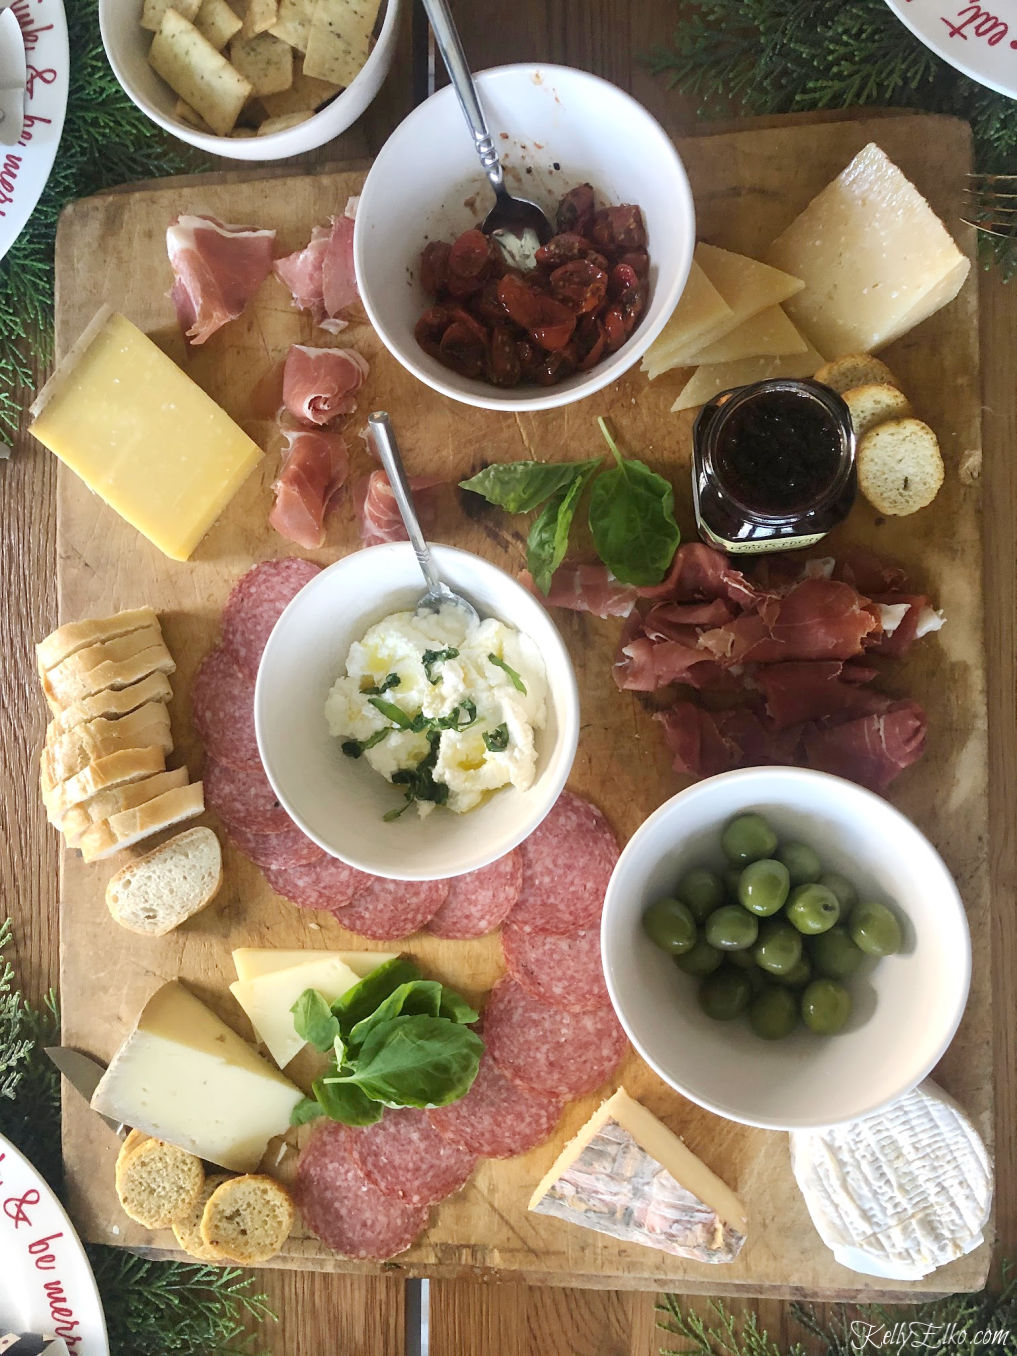 Make an epic charcuterie board to wow your guests kellyelko.com #charcuterie #cheeseboard #appetizers #partyfood #partyrecipes #nocook #kellyelko